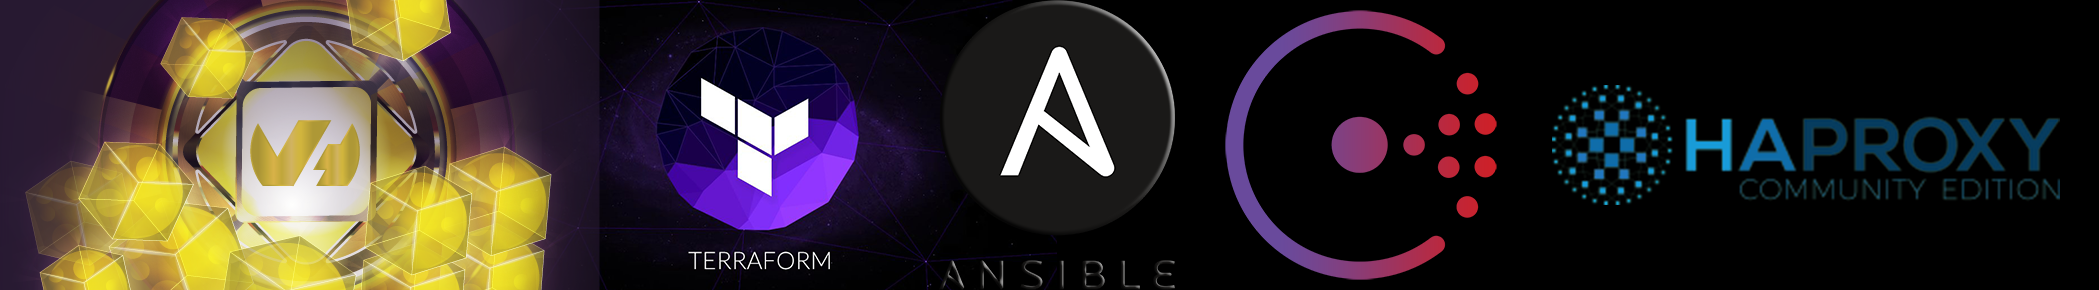 PCi, Terraform, Ansible, Consul & Co.